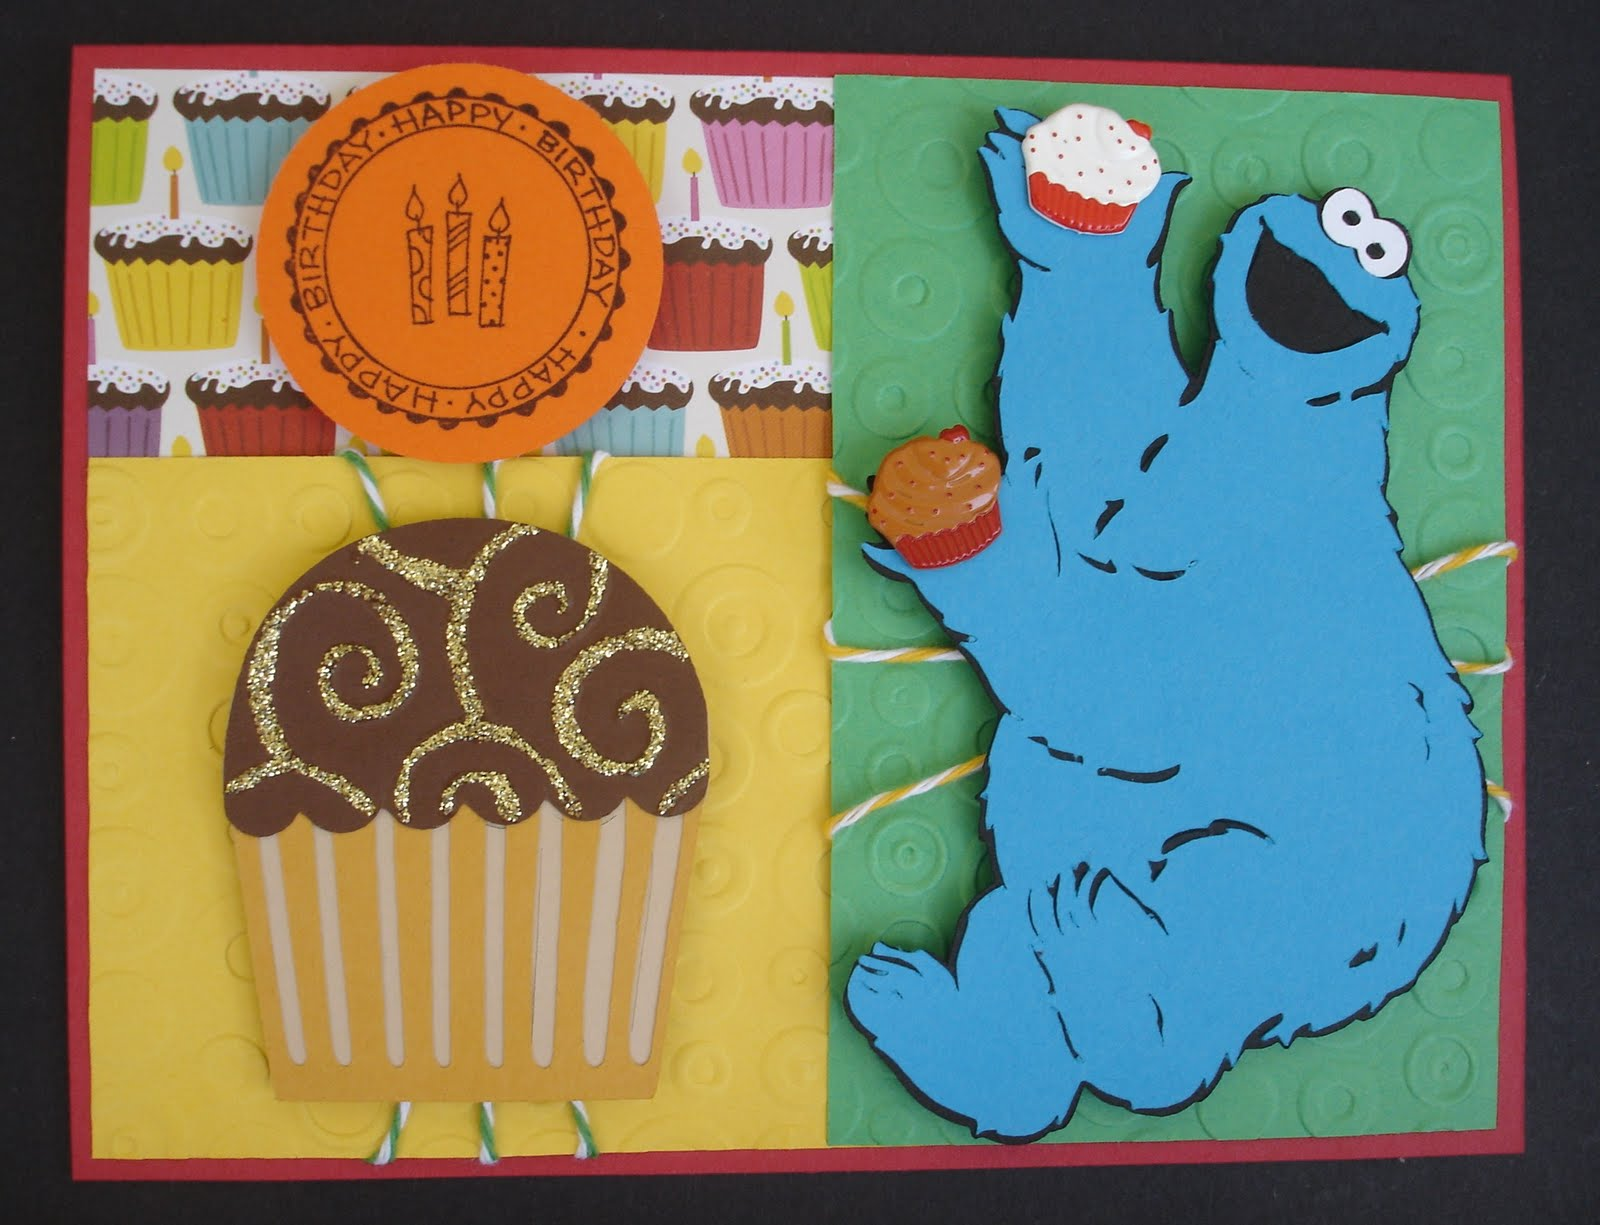 Crafted with love by karen cookie monster birthday card i figured cookie monster would enjoy cupcakes just as much as he likes cookies o thanks for looking and have a great day bookmarktalkfo Choice Image